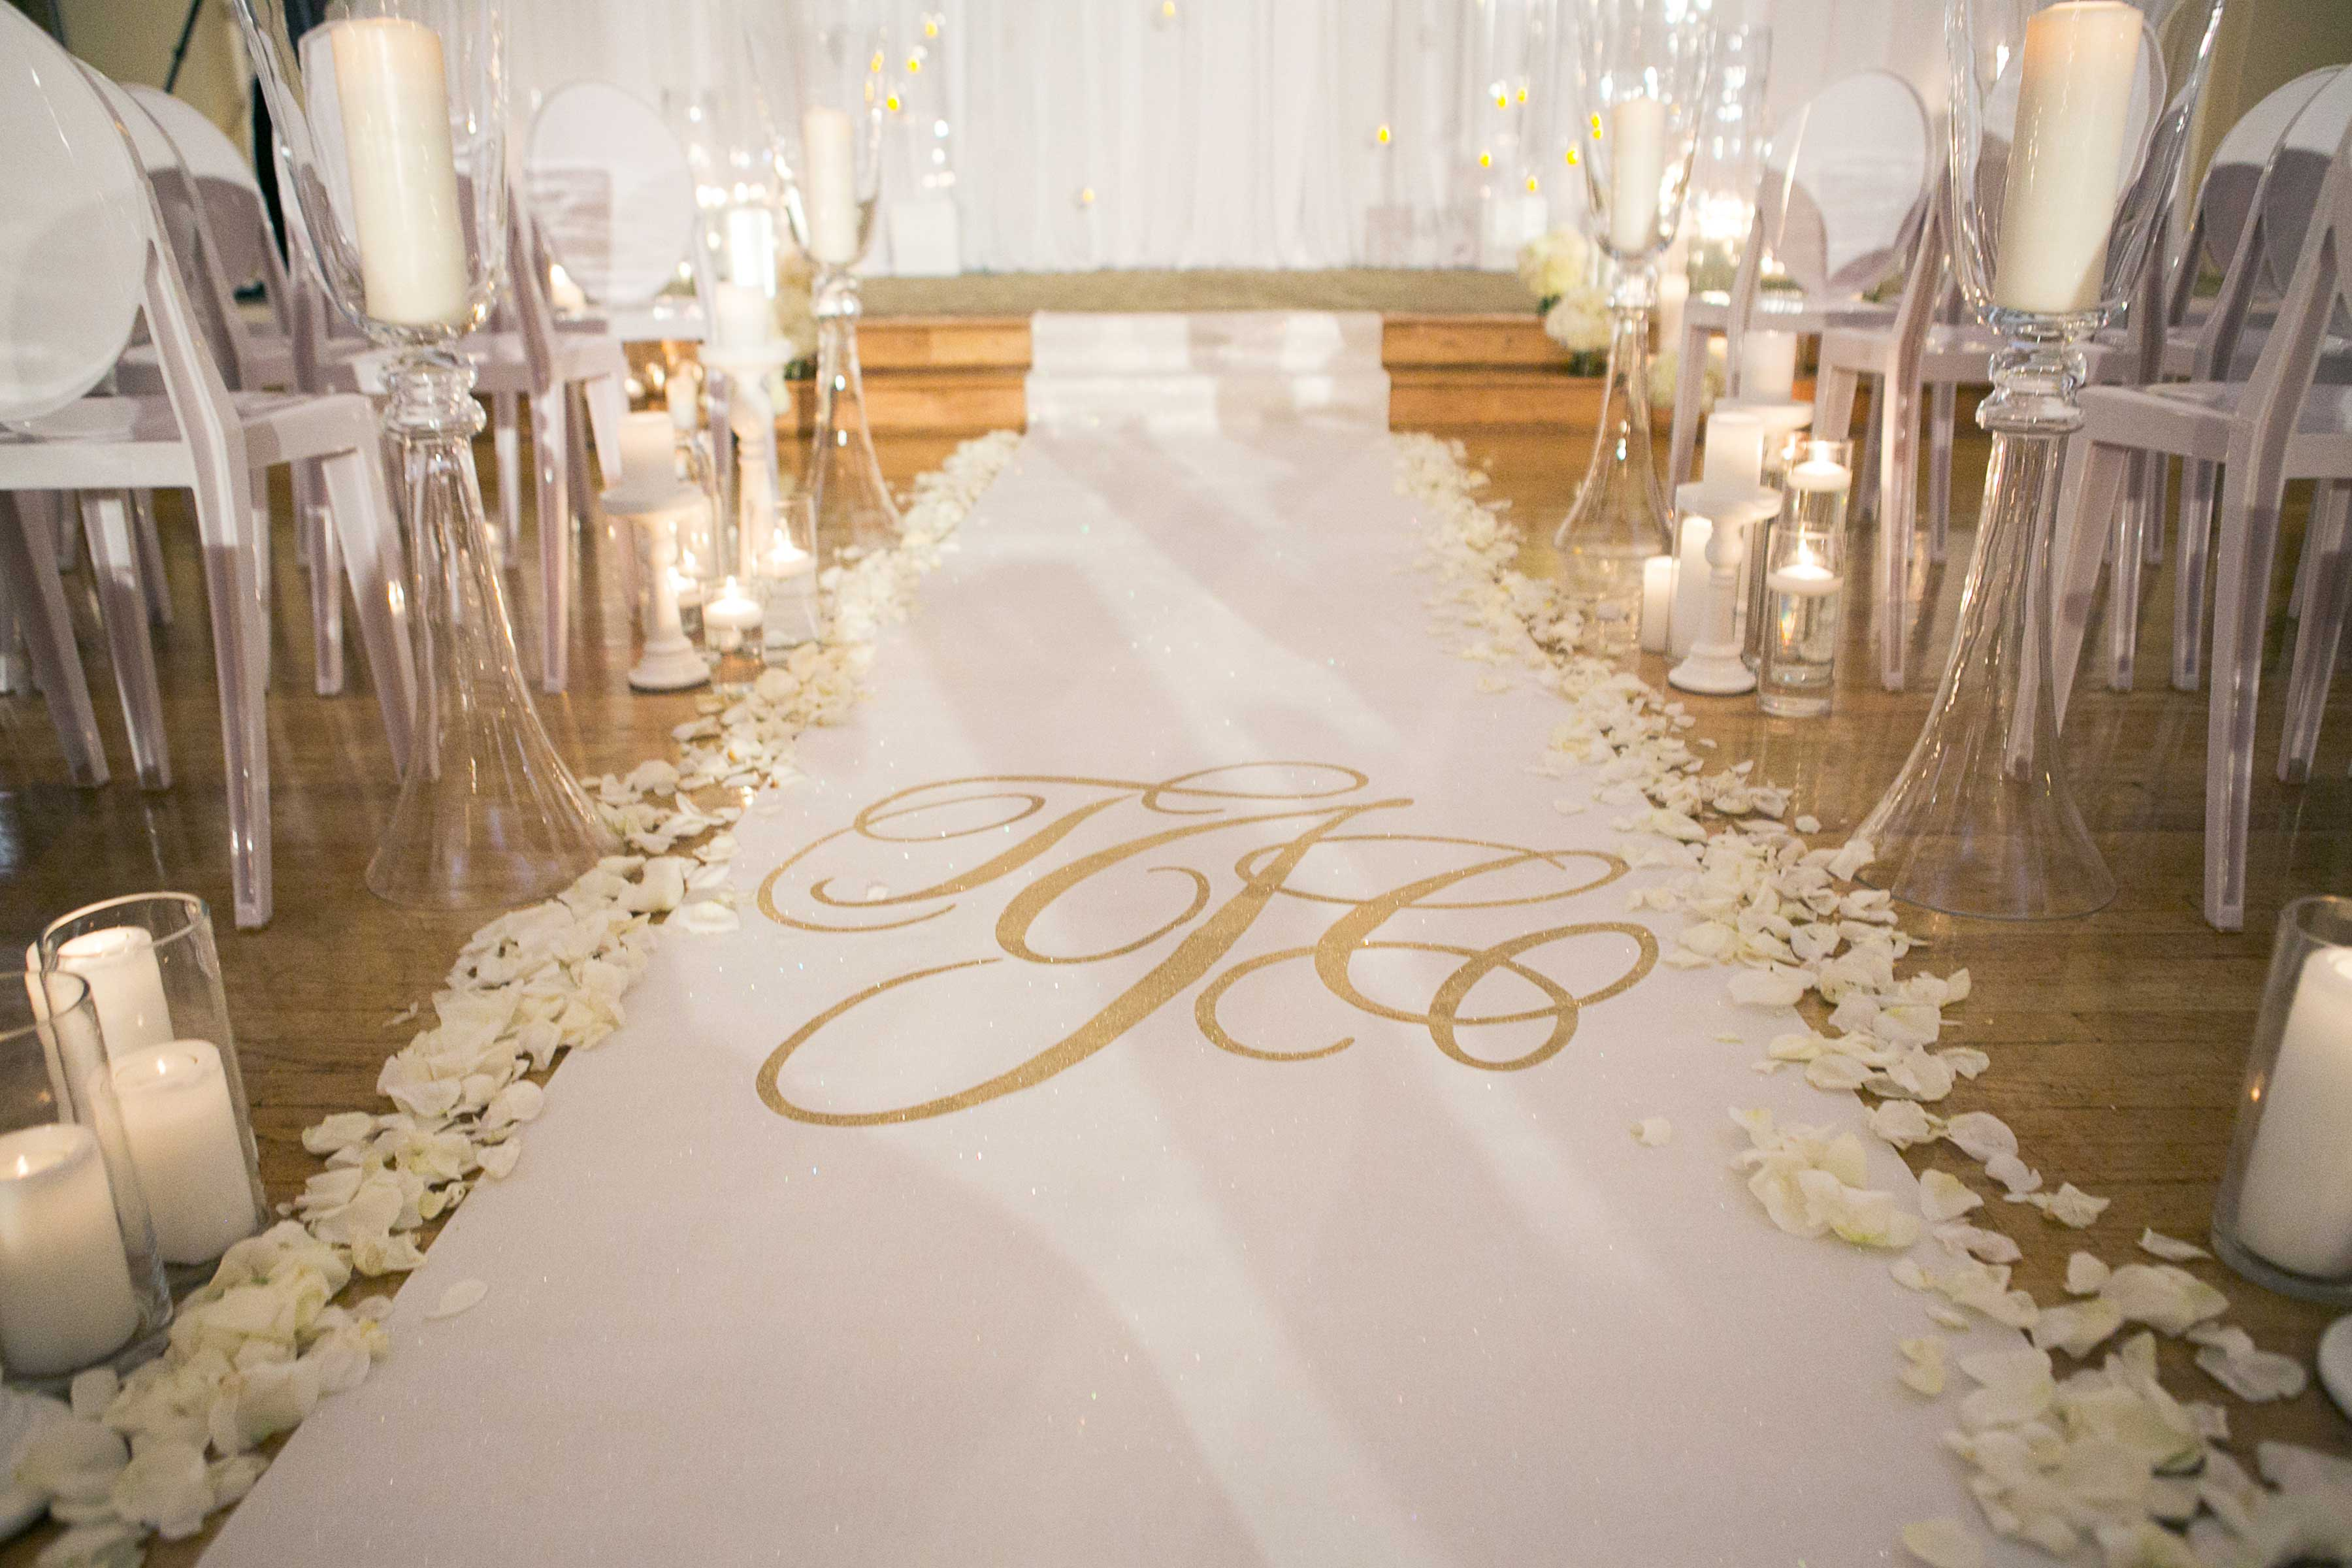 wedding aisle runner Photo by Rob and Wynter Photography Aisle Runner by The Original Runner Company